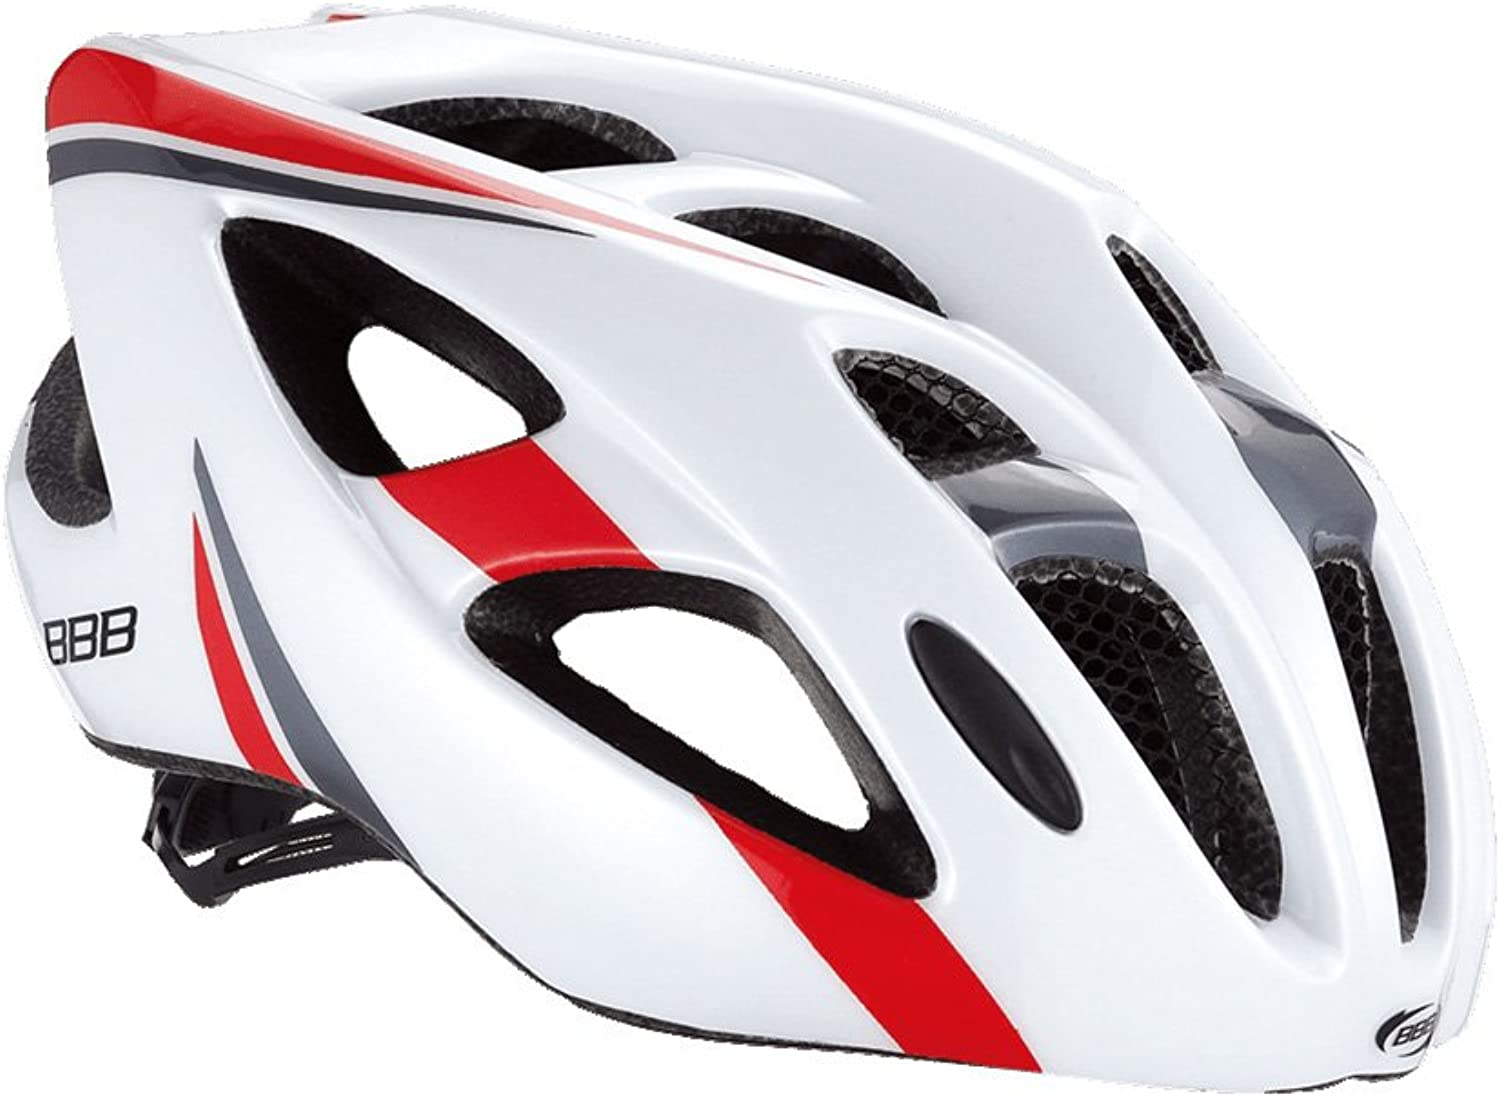 BBB Kite BHE-33 White-Red Helmet 2016